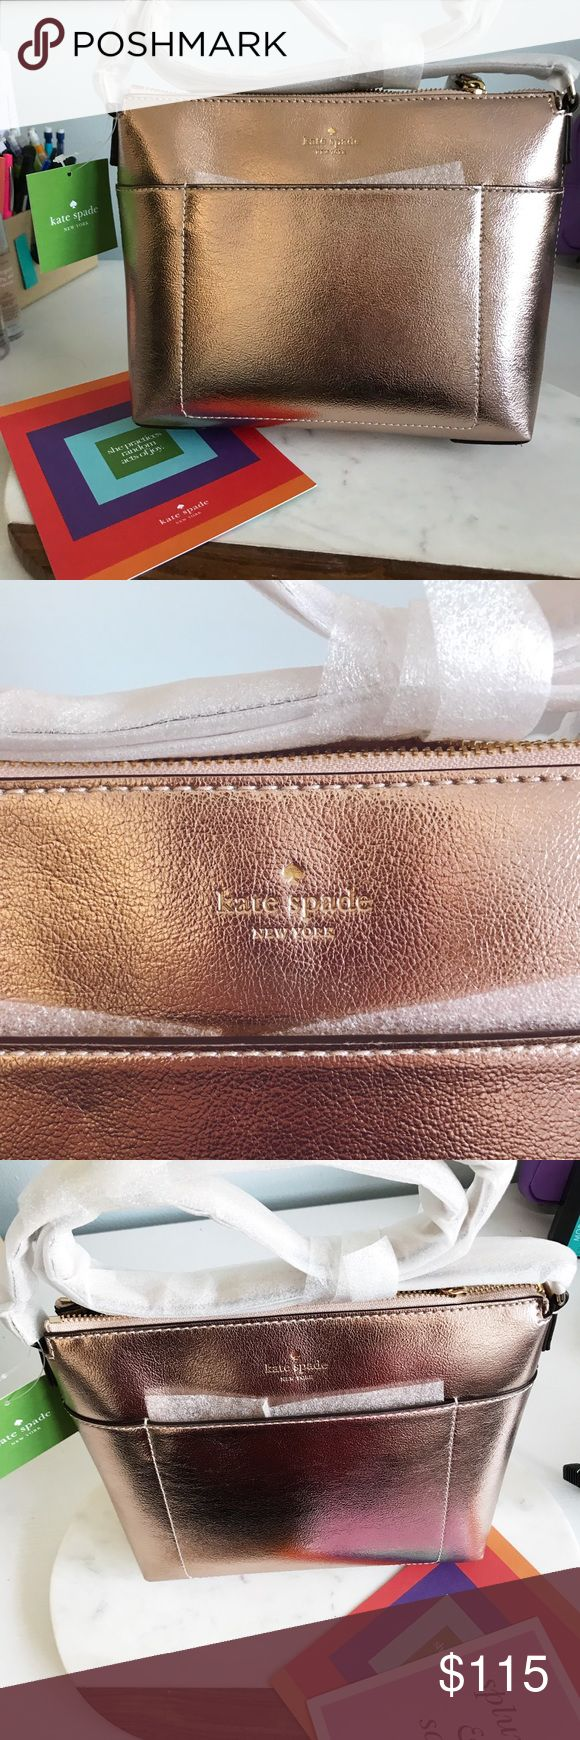 Kate Spade 'holiday lane evie' bag NWT rose gold Kate Spade 'holiday lane evie' bag • make me an offer!! Size details and photos from Nordstrom website, lowest price for this bag on Poshmark! kate spade Bags Satchels